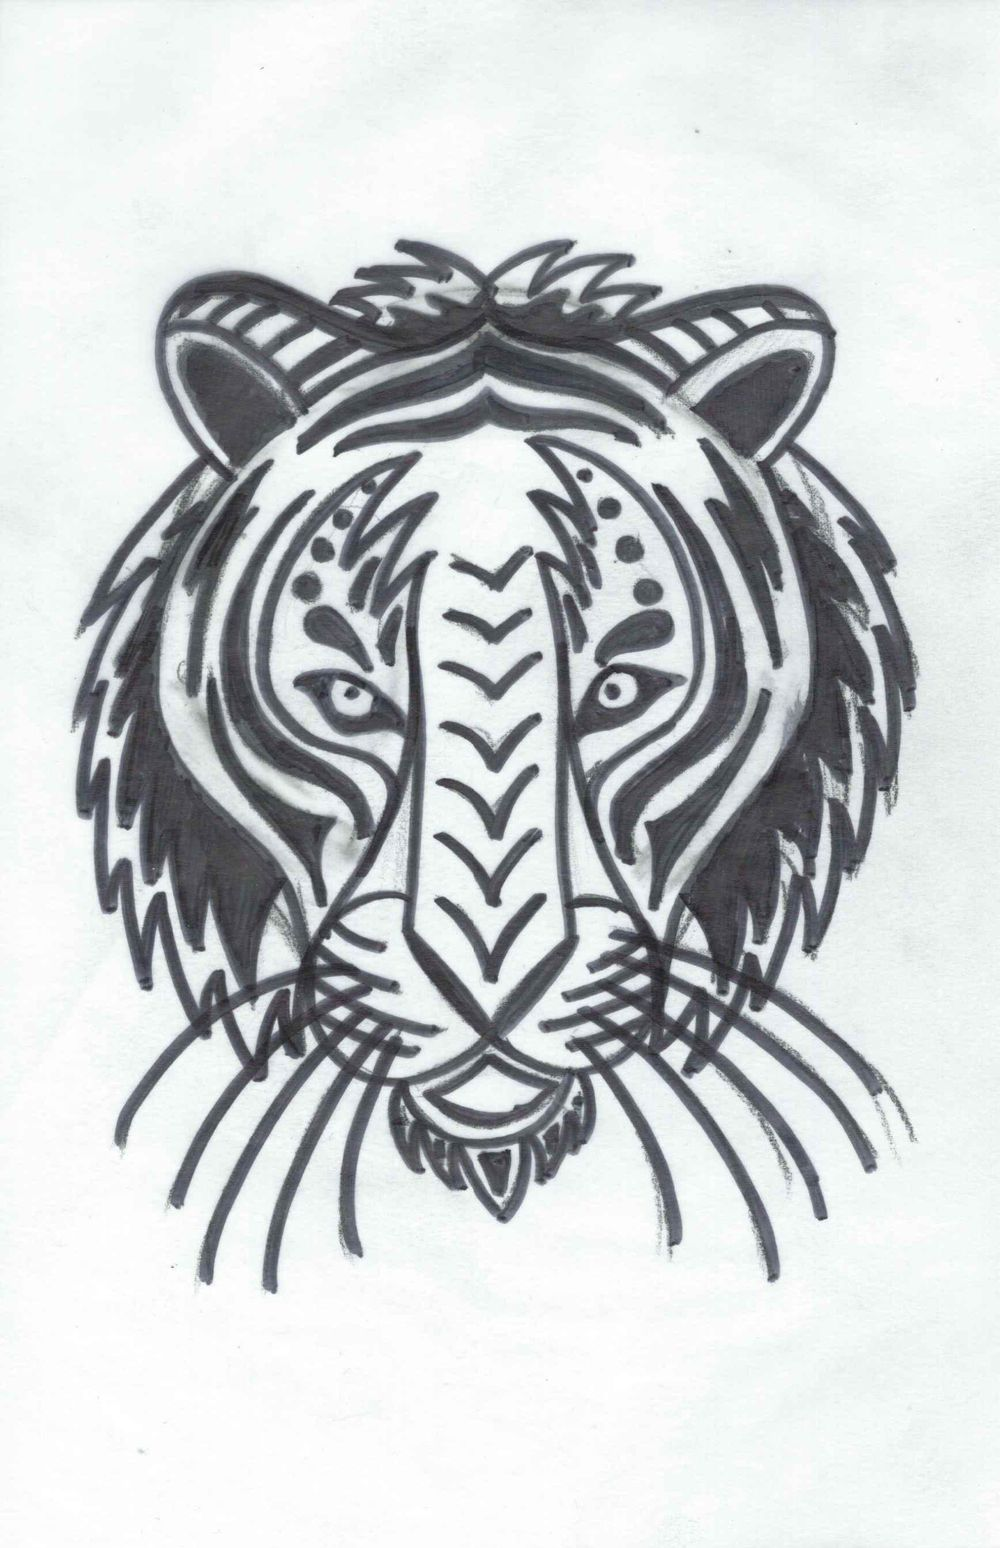 The Tiger - image 1 - student project